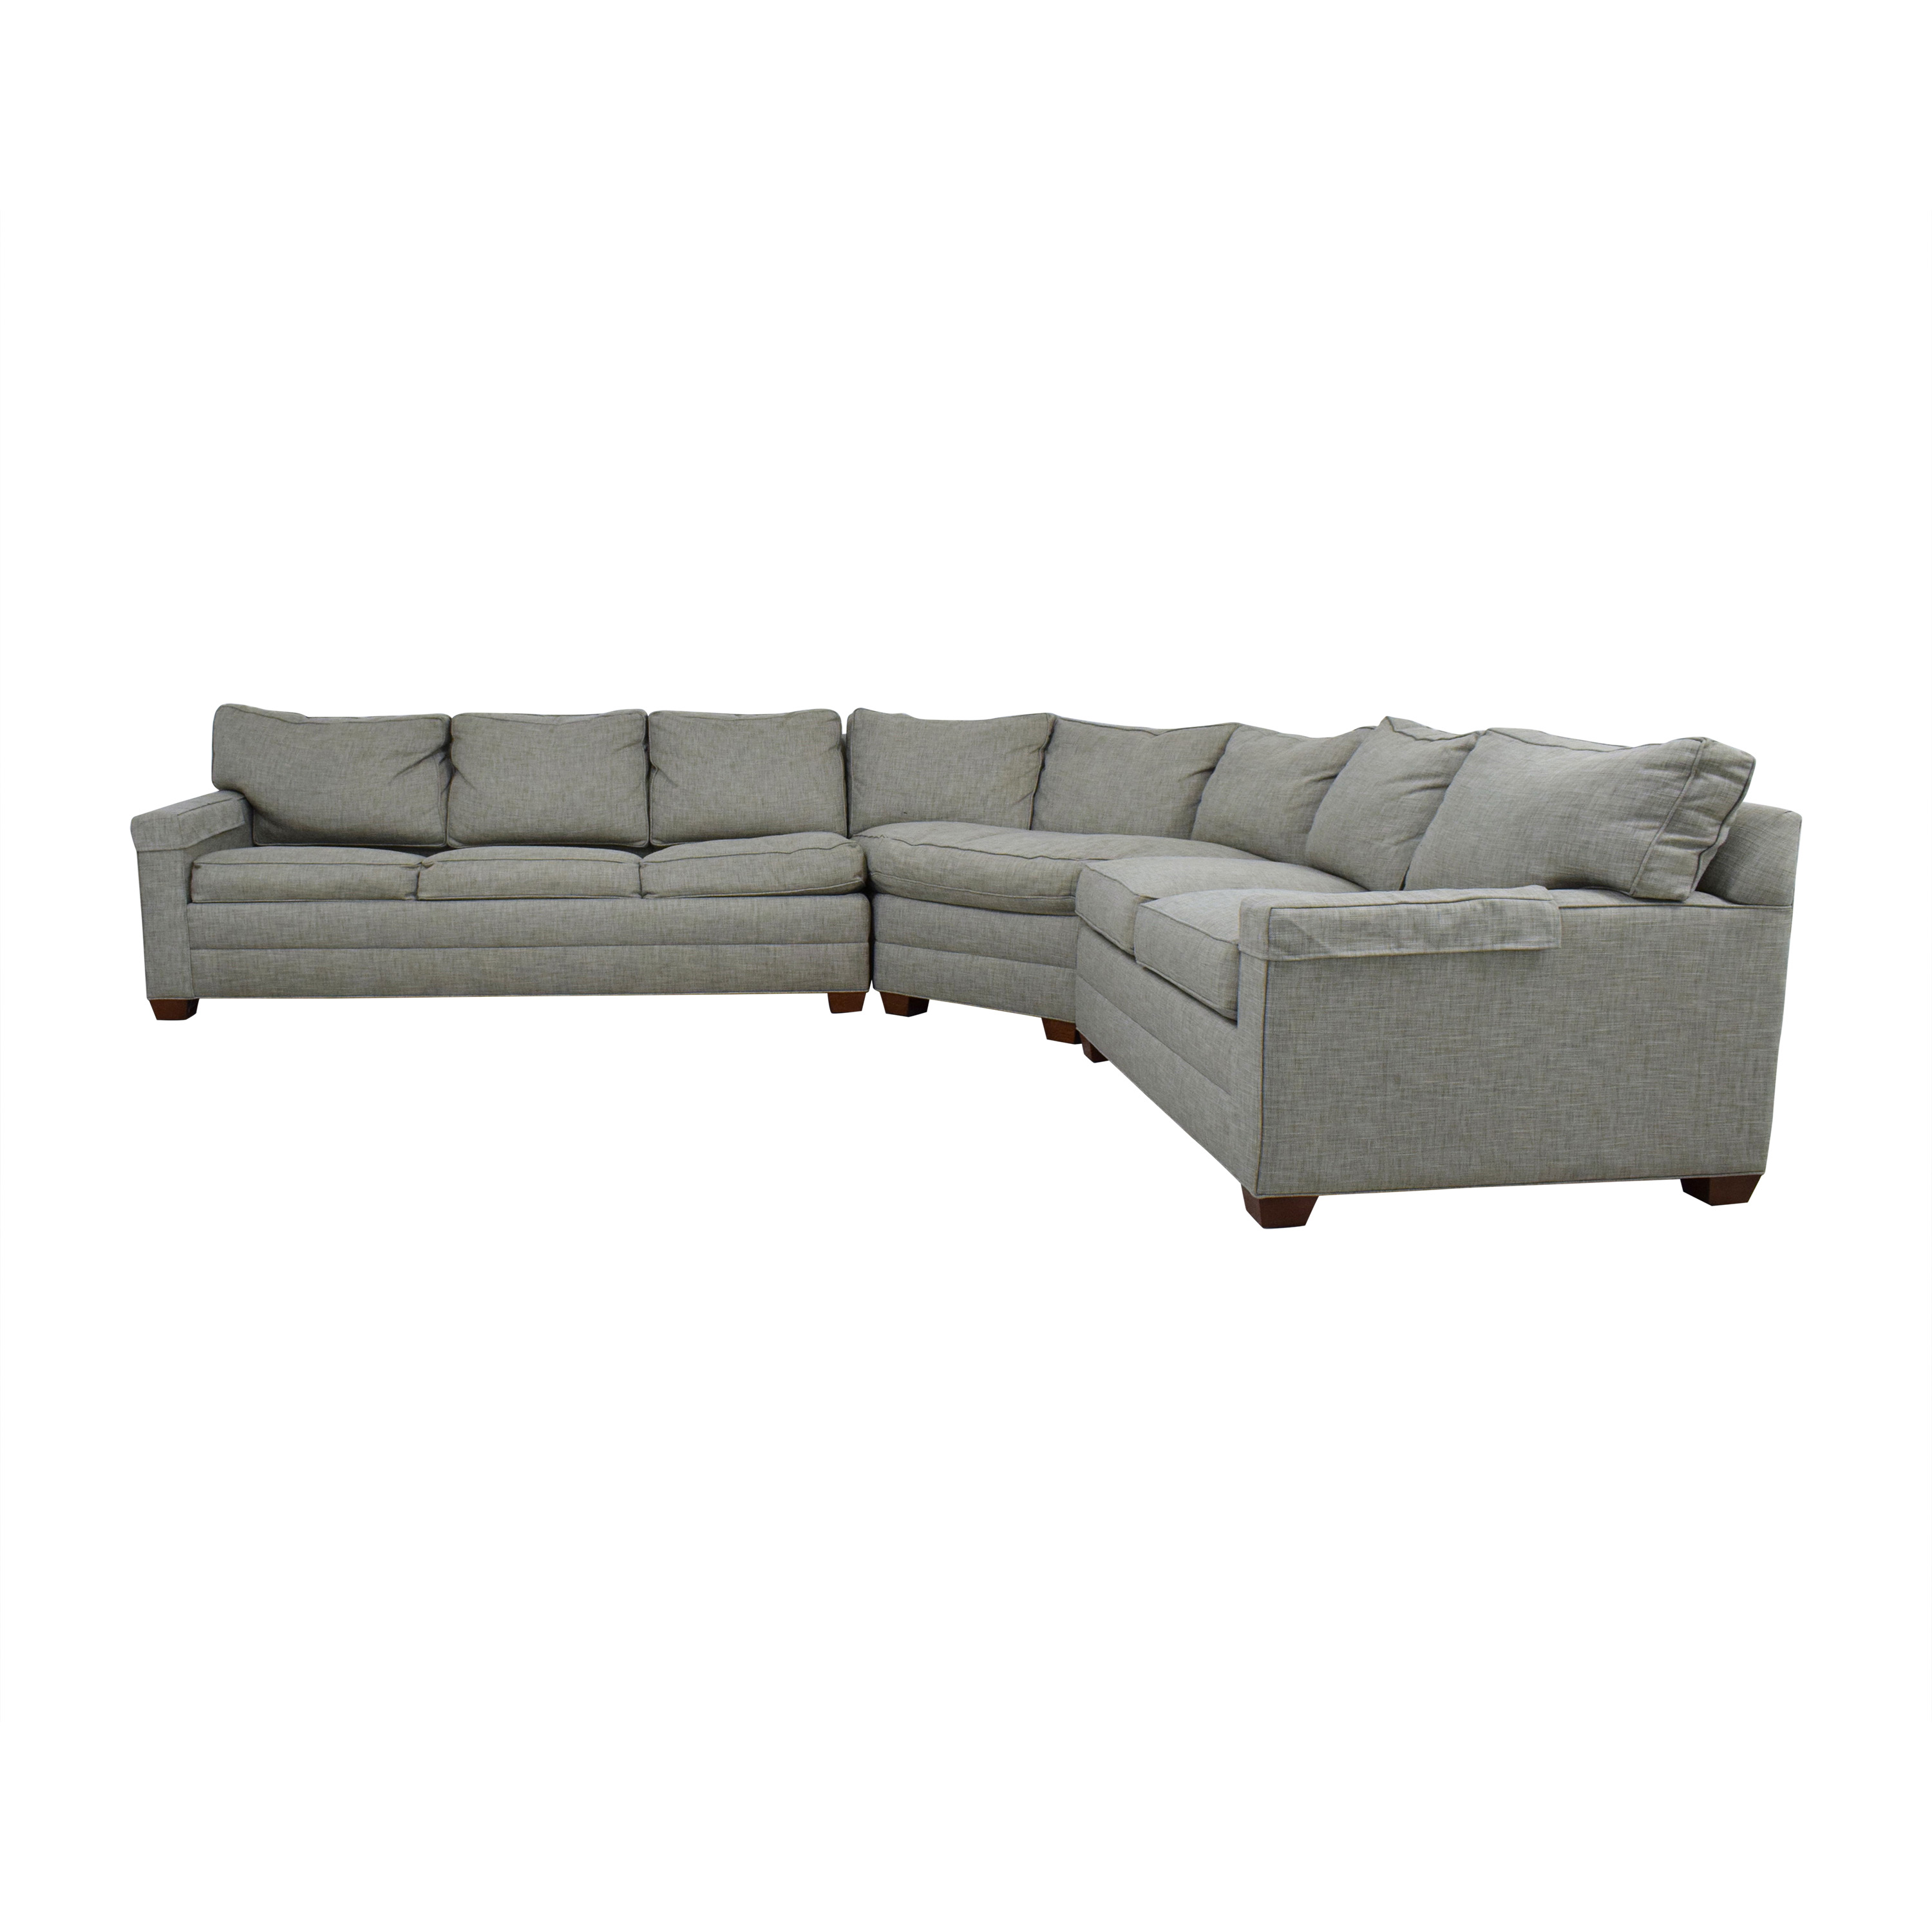 Ethan Allen Ethan Allen Bennett Queen Sleeper Sectional coupon